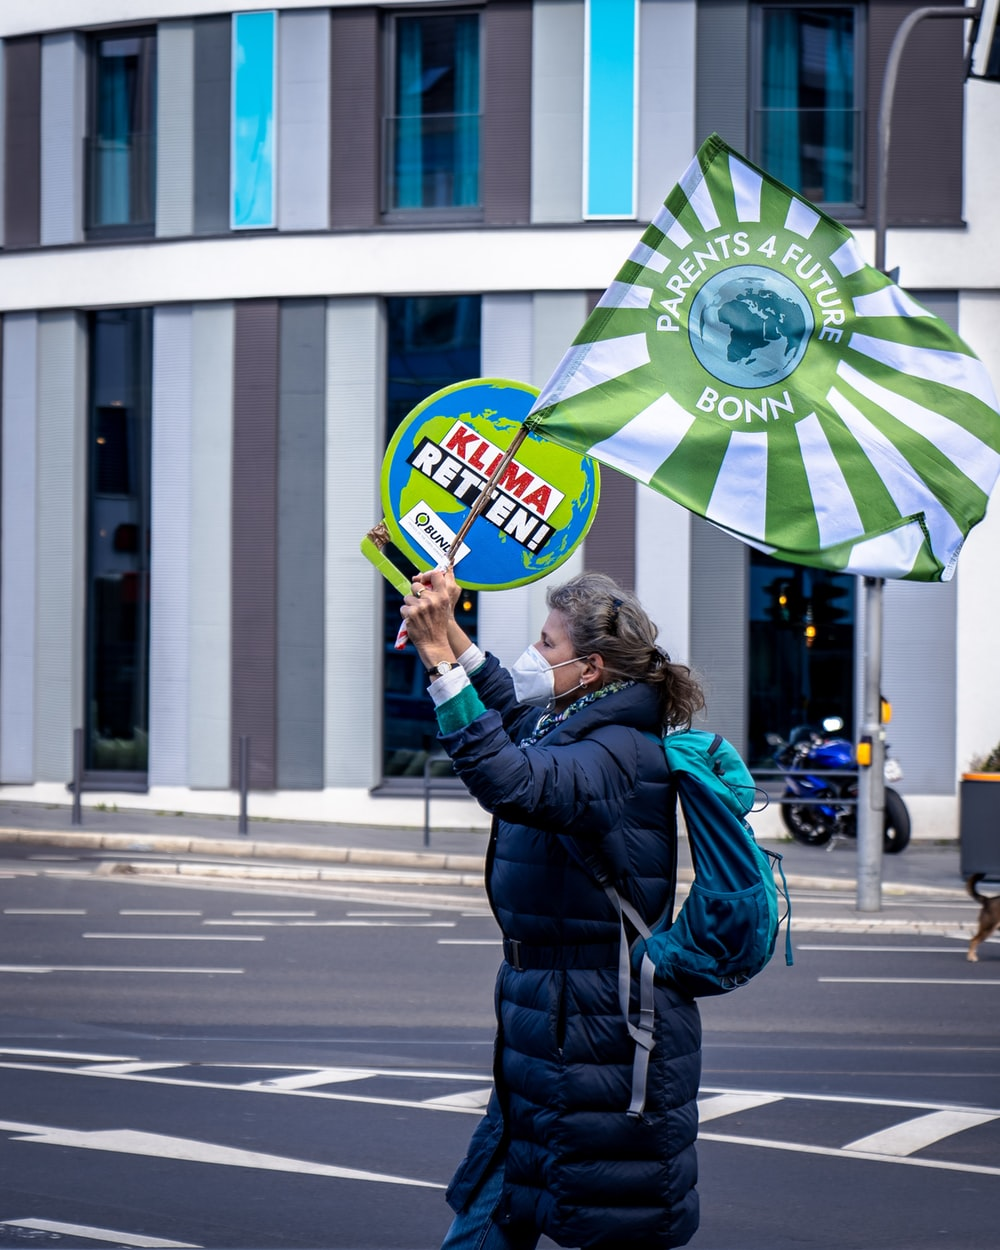 woman in blue jacket holding yellow and green umbrella